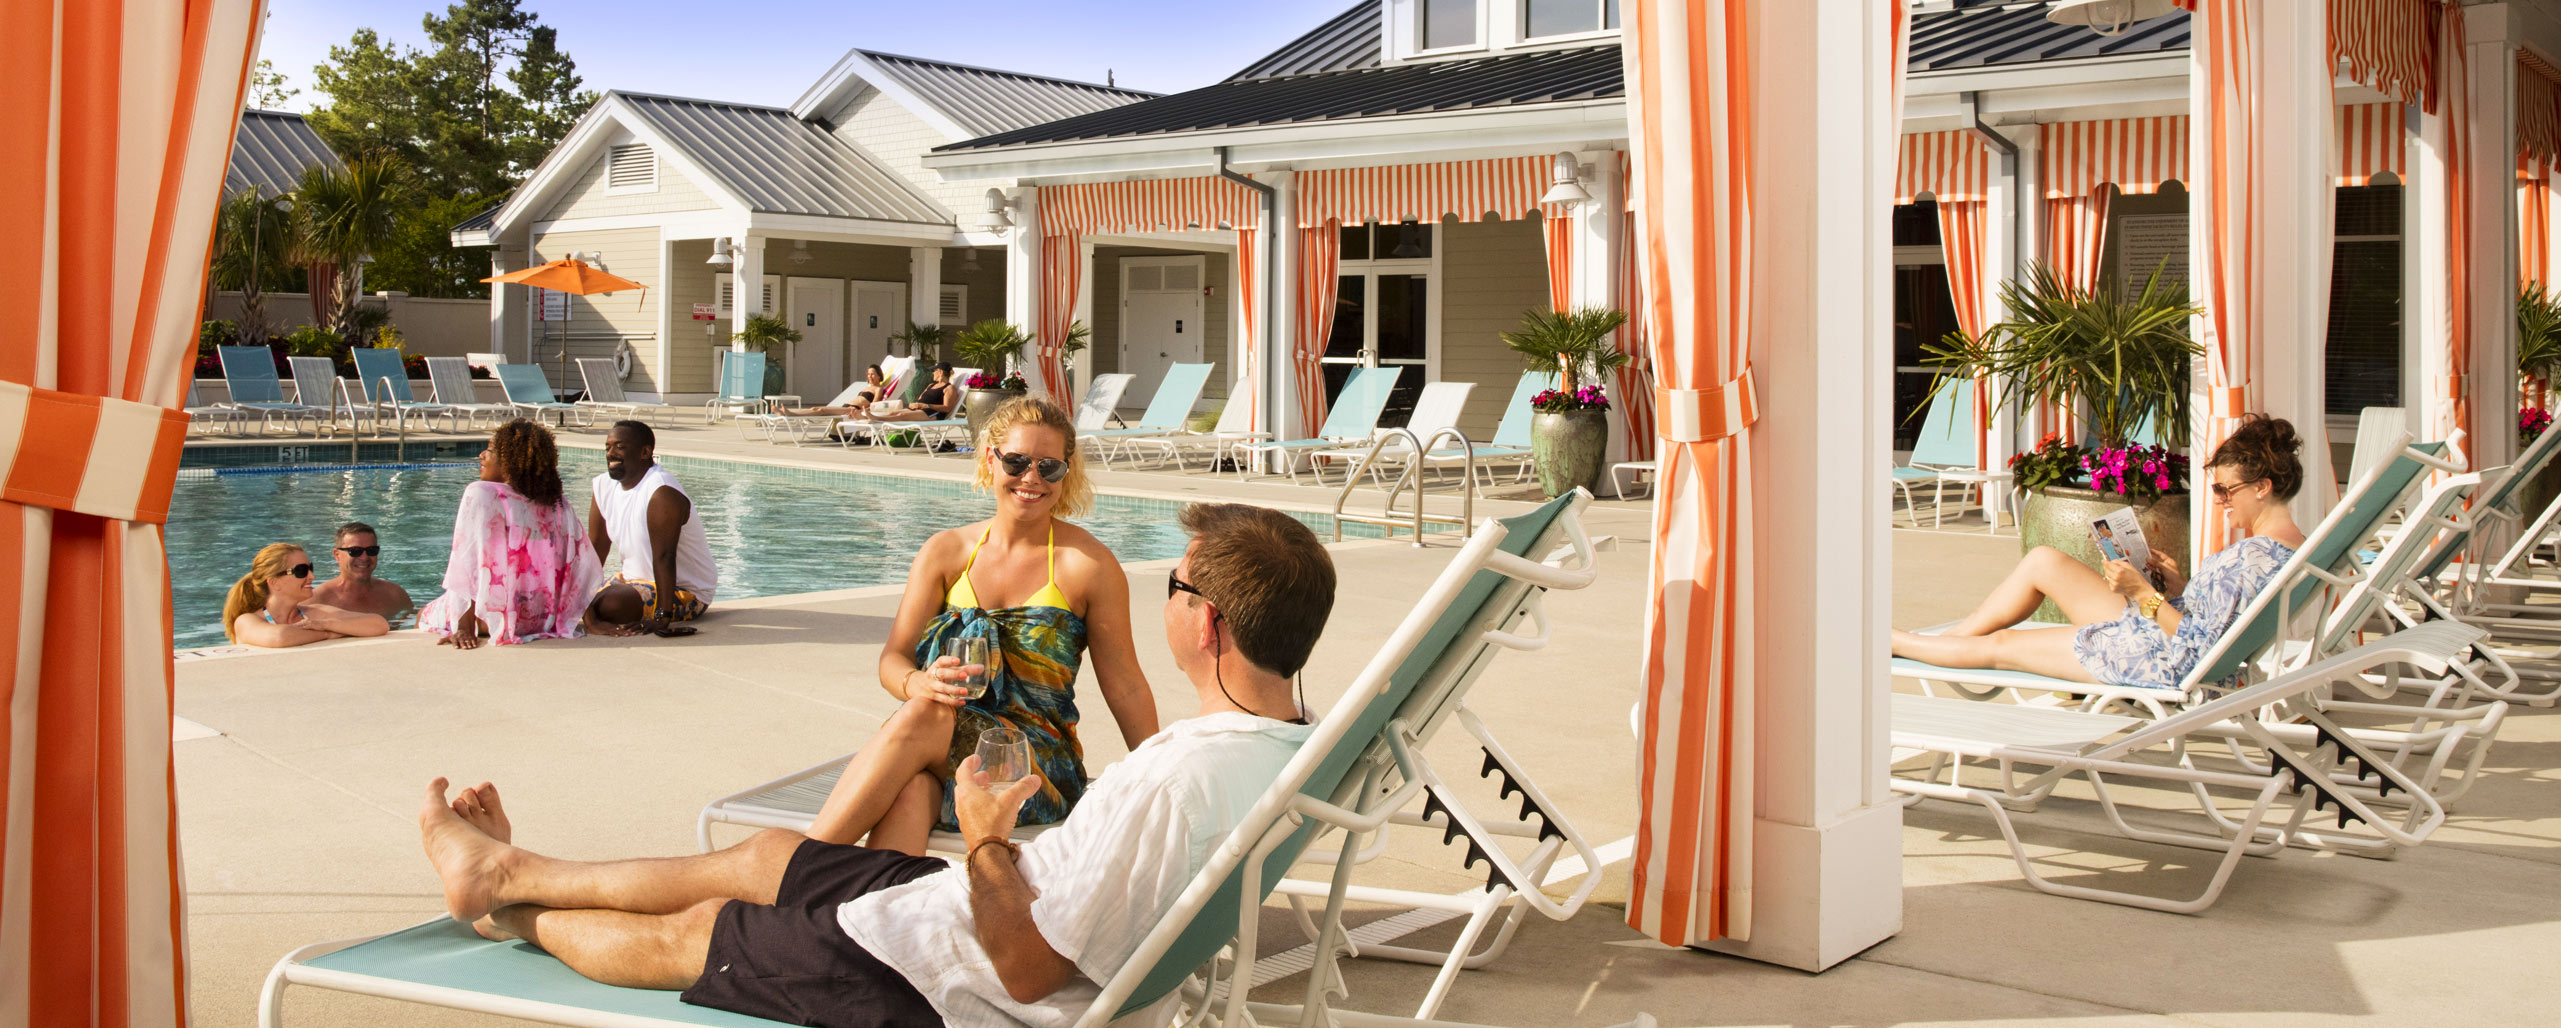 Brunswick Forest poolside view of residents enjoying the cabana